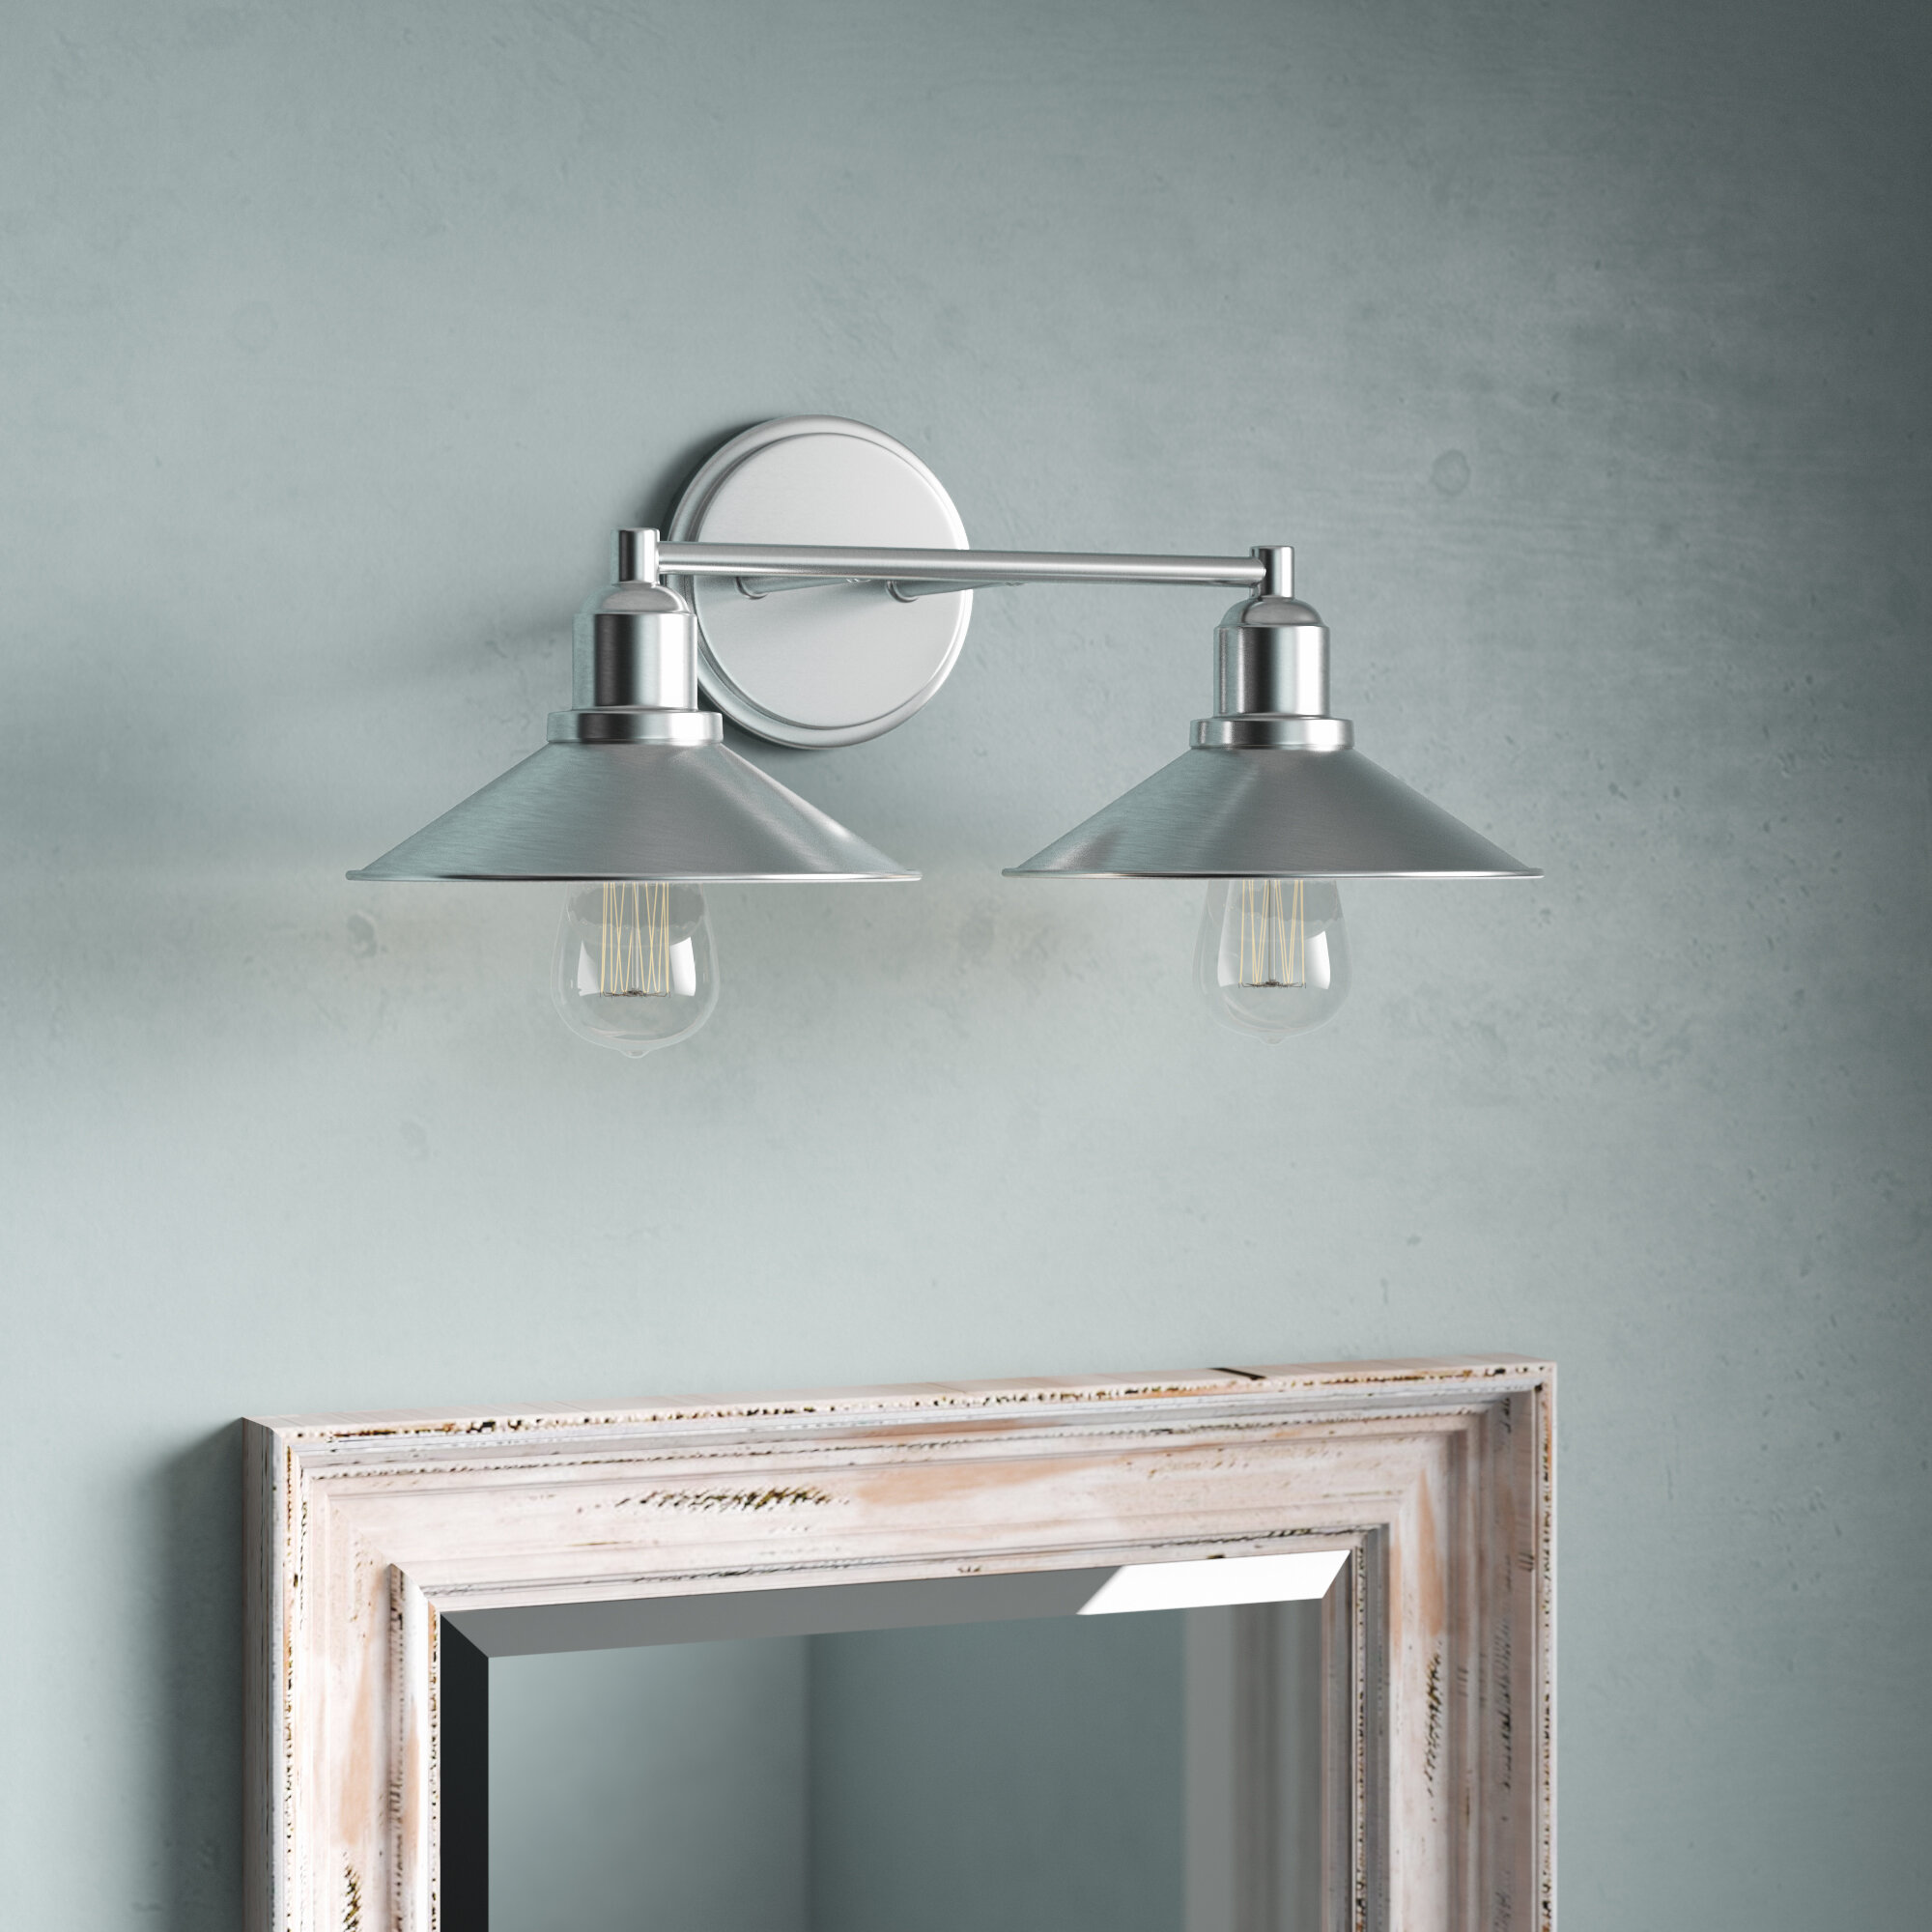 Breakwater Bay Cromartie 2 Light Vanity Light Reviews Wayfair